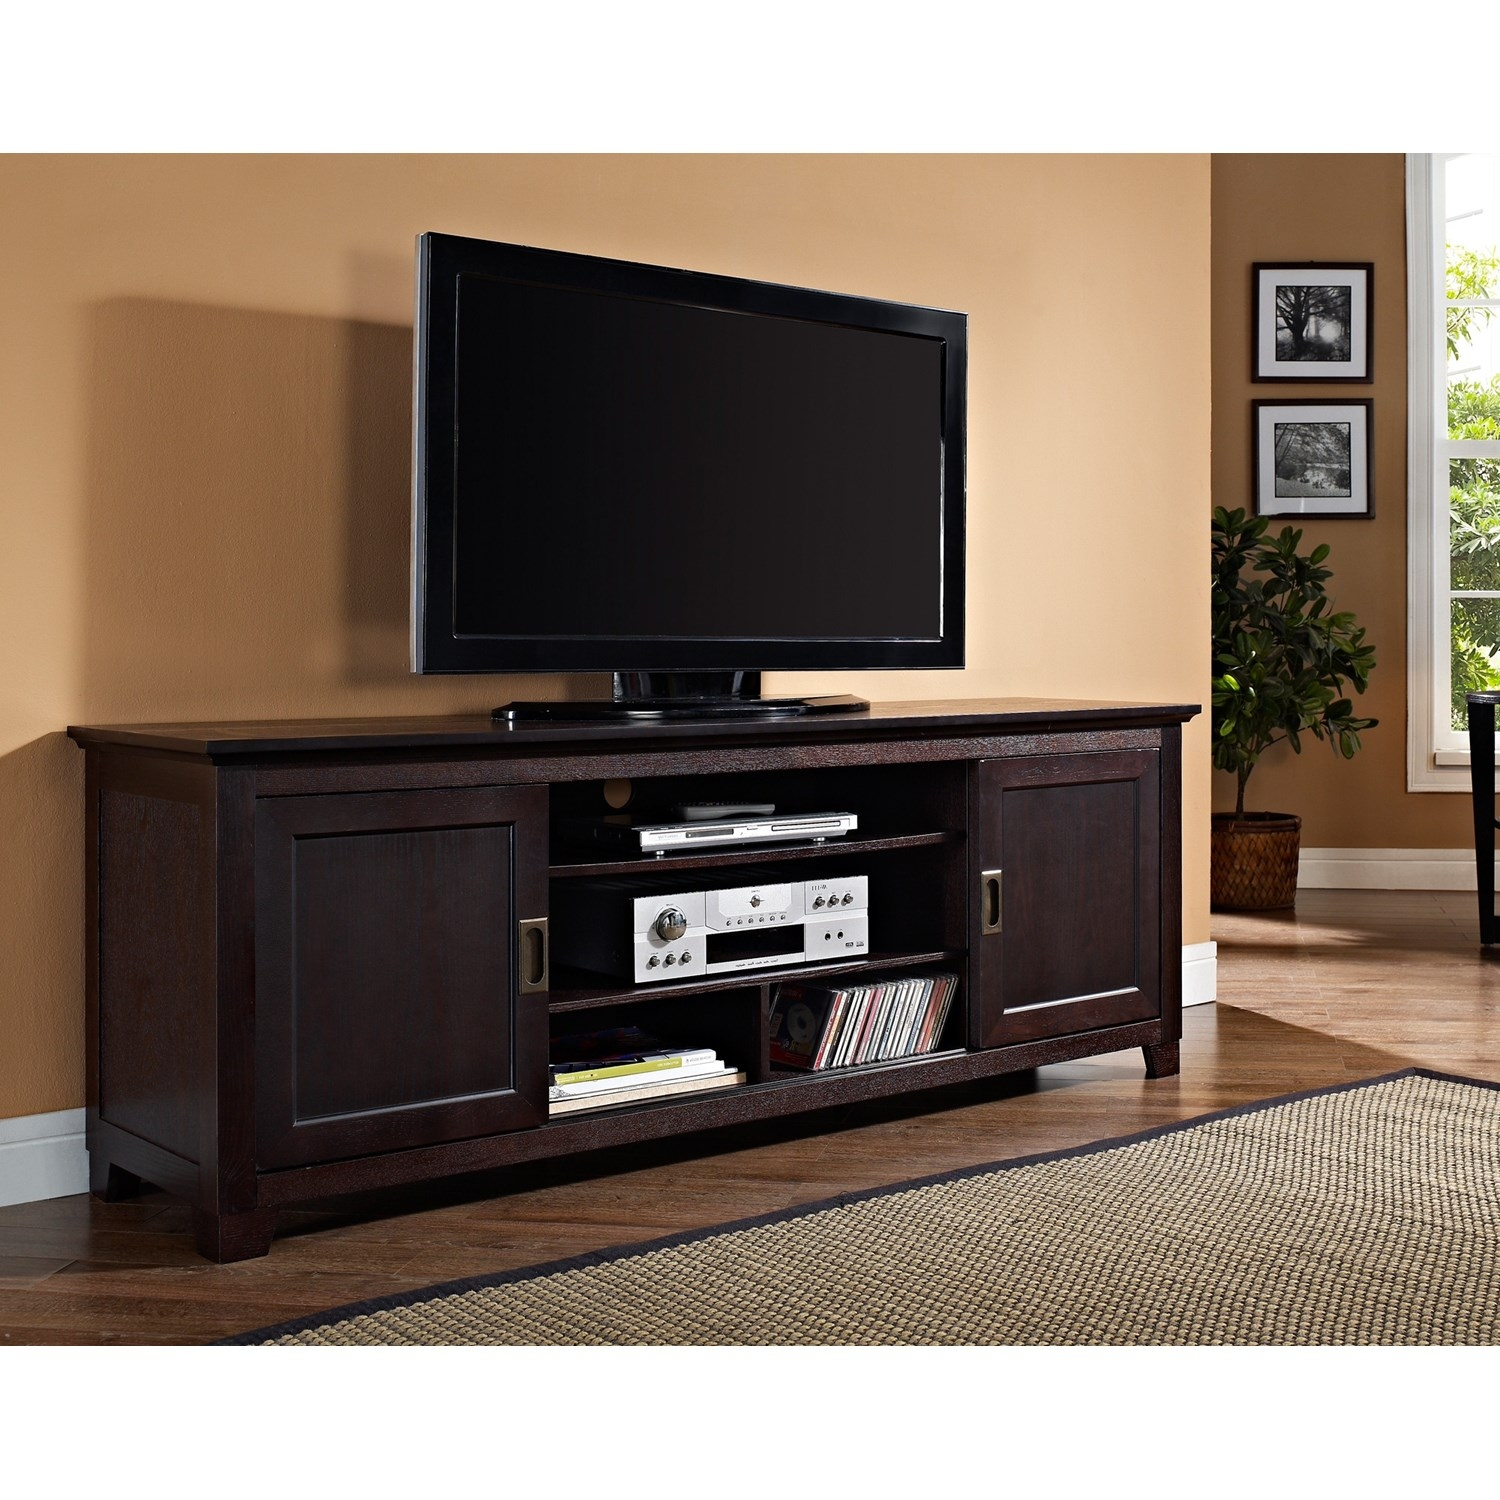 Sliding Door Tv Stand Espressowalker edison 70 wide espresso wood tv stand console with sliding